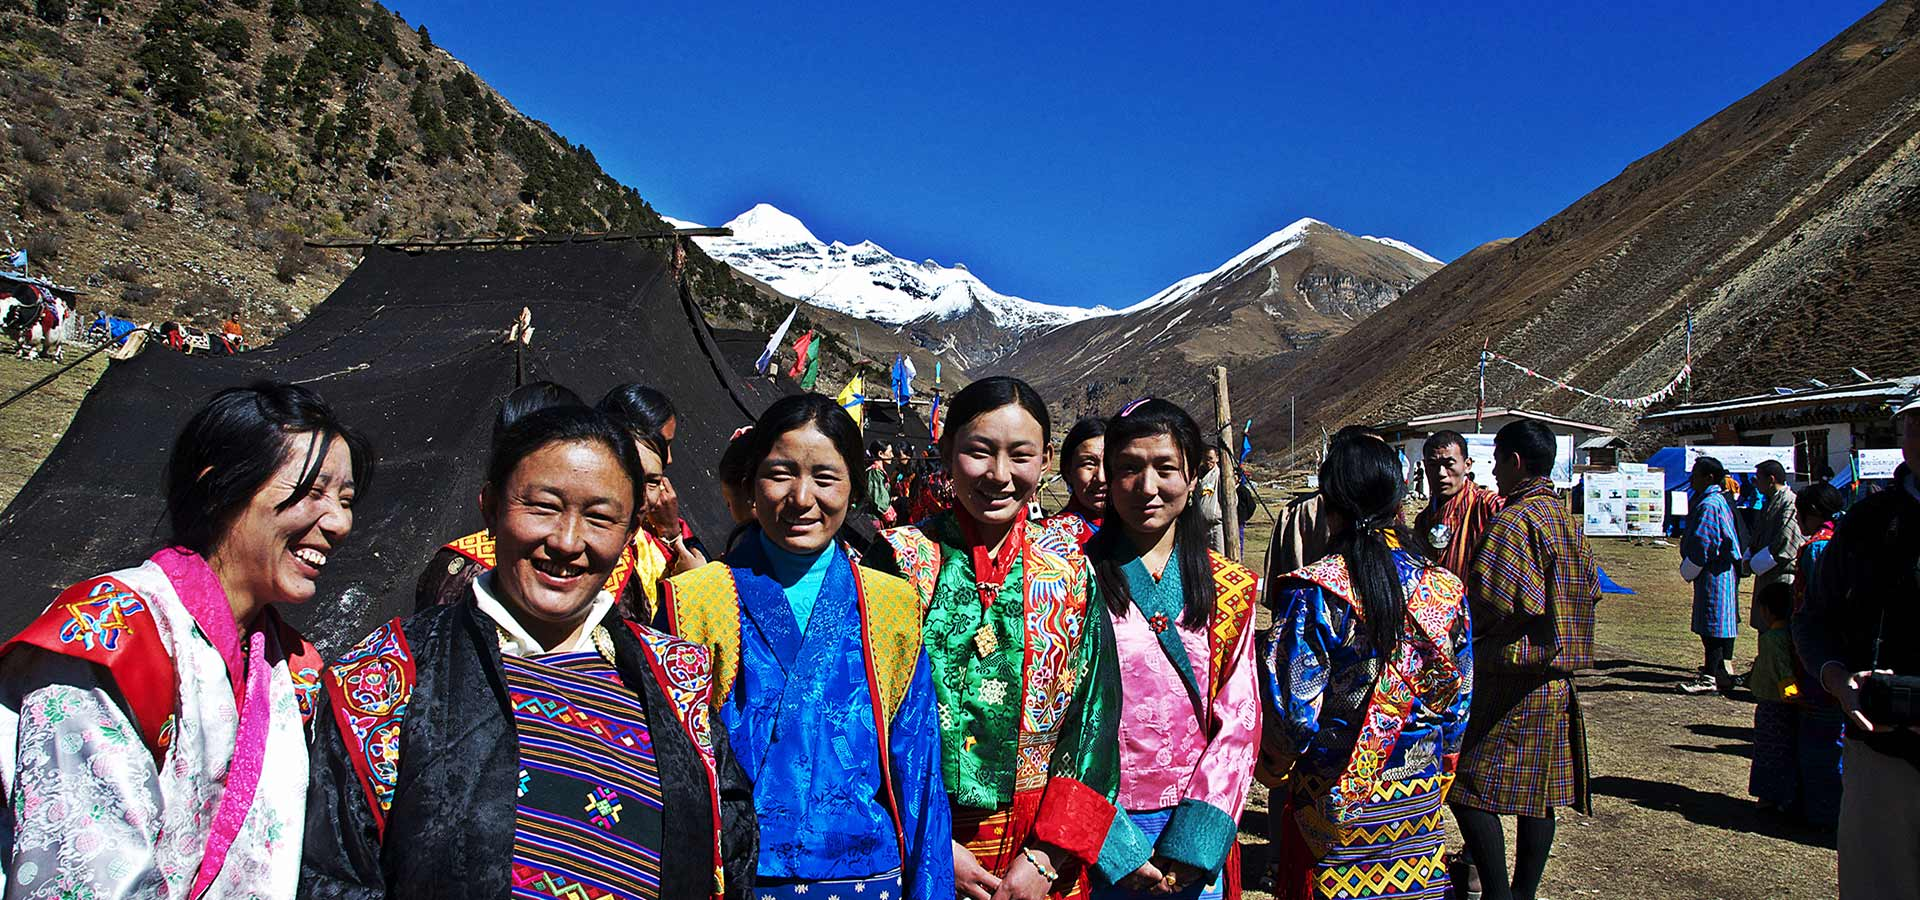 Local women of Jomolhari during the annual mountain festival at the base camp, Jangothang.